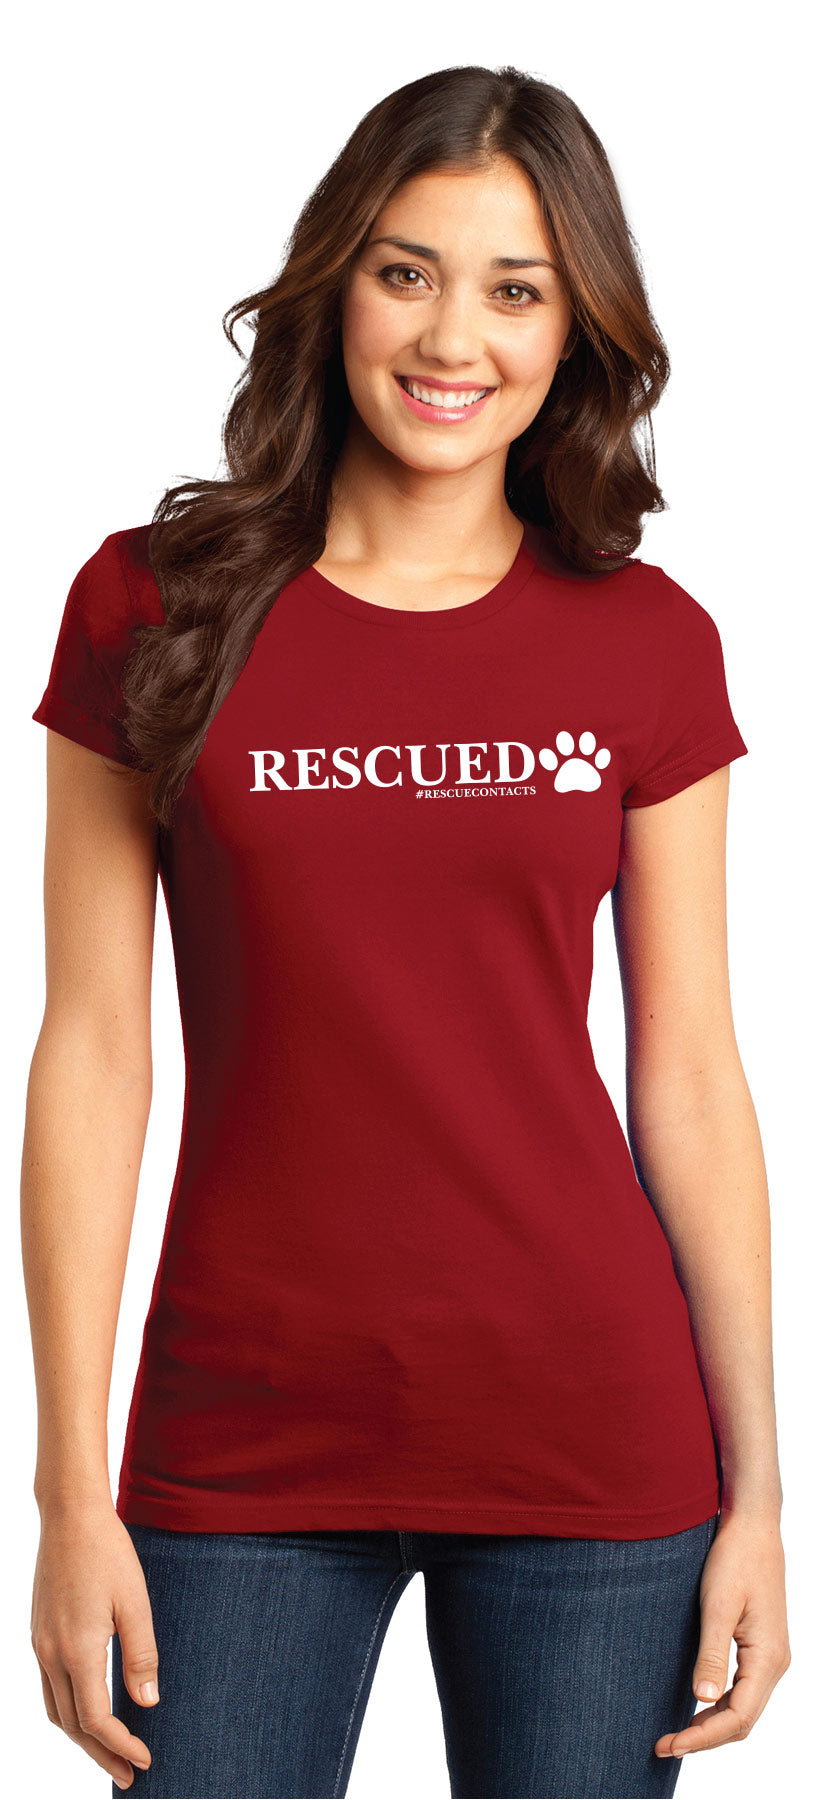 Red tee shirt for women that says rescued in white print with dog paw and # rescue contacts